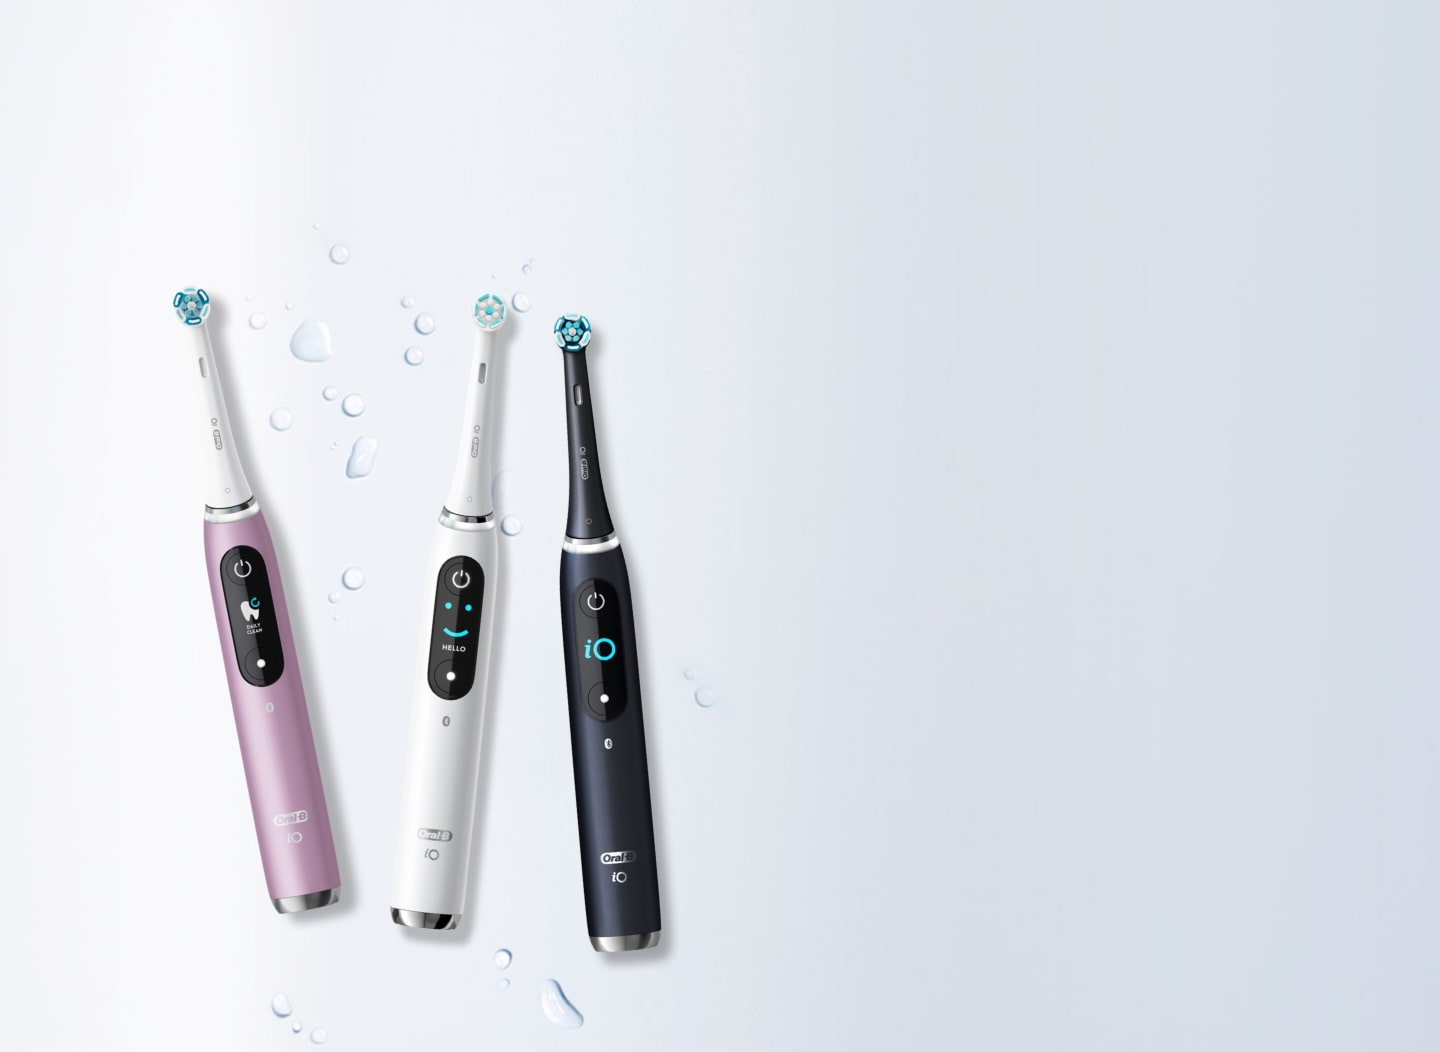 iO Electric Toothbrushes